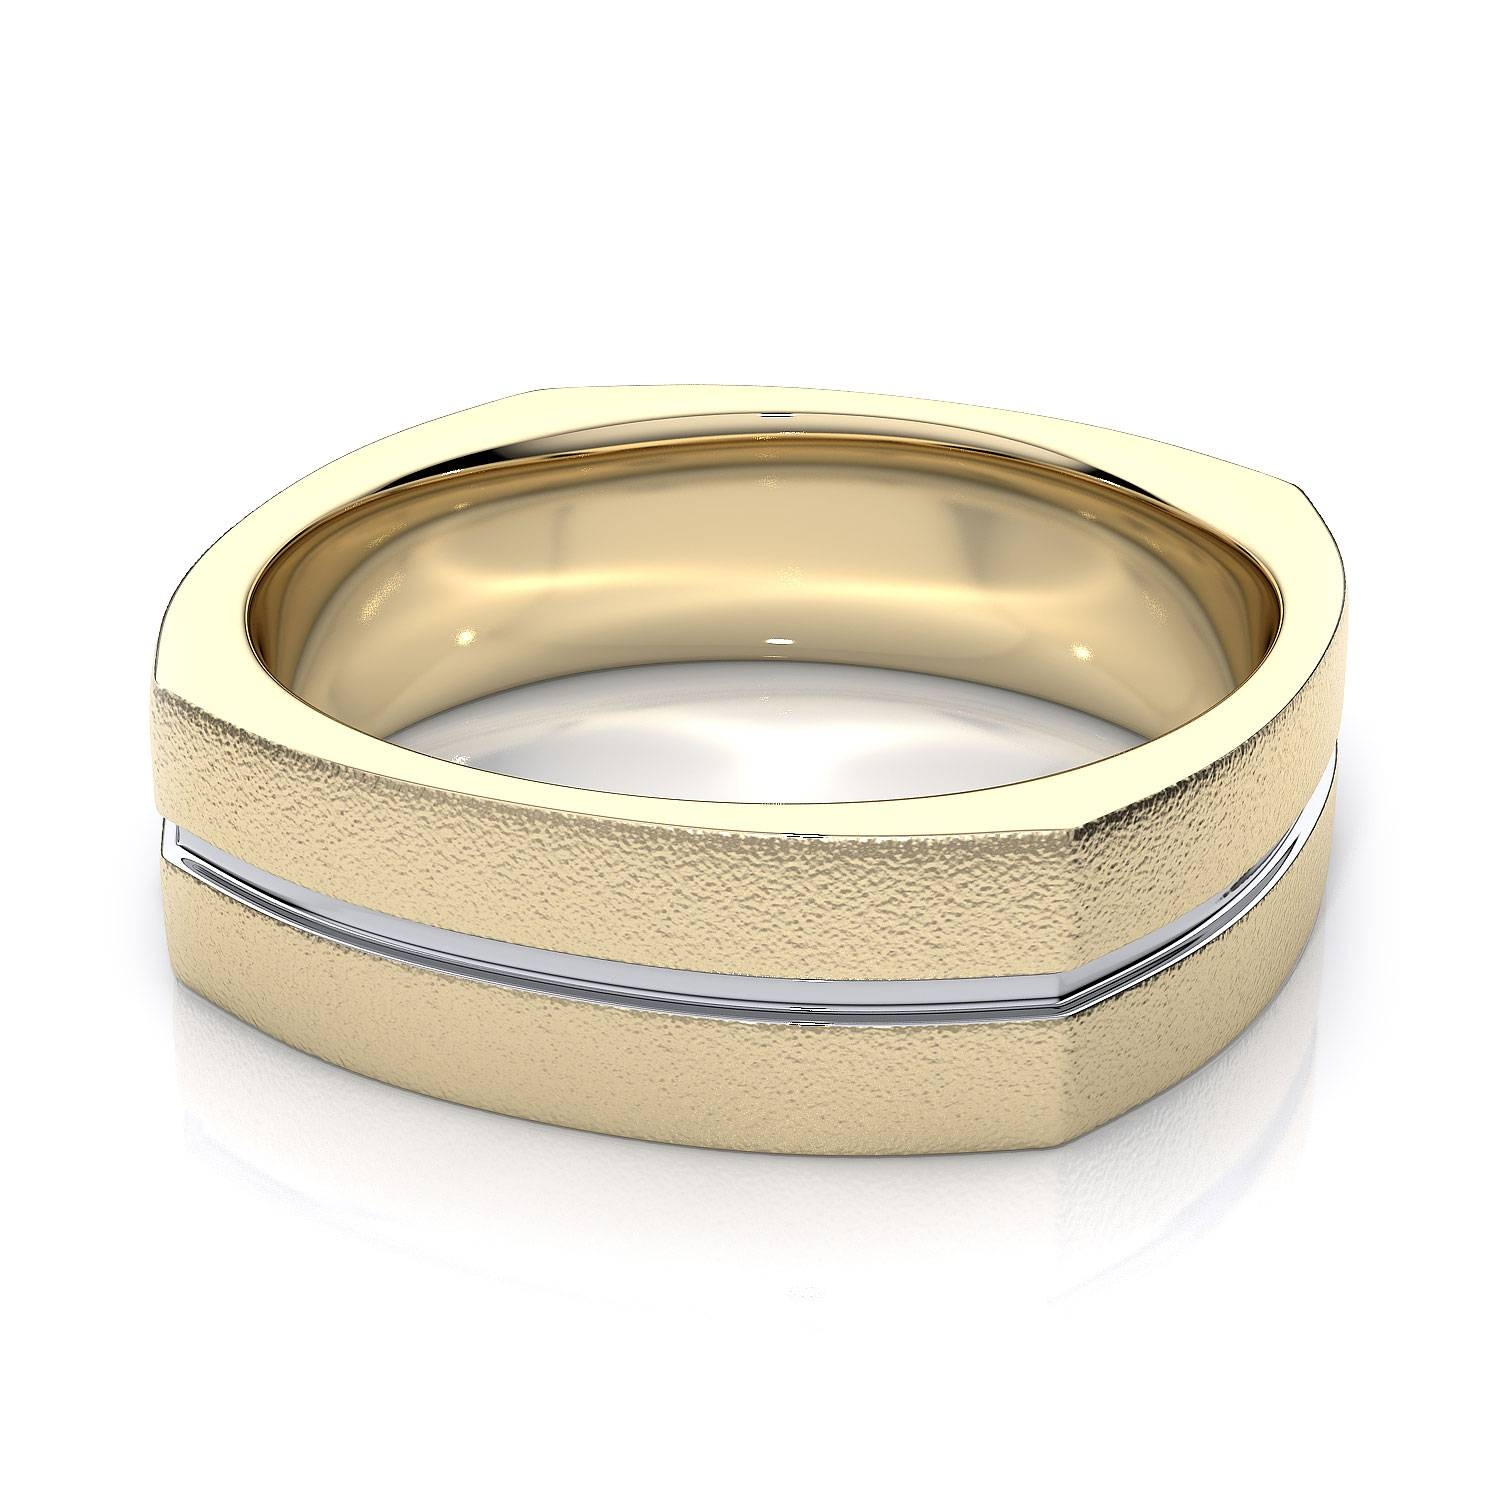 7Mm European Shank Two Tone Mens Plain Wedding Band In 14K Yellow Gold With Regard To Most Current European Wedding Bands (View 4 of 15)